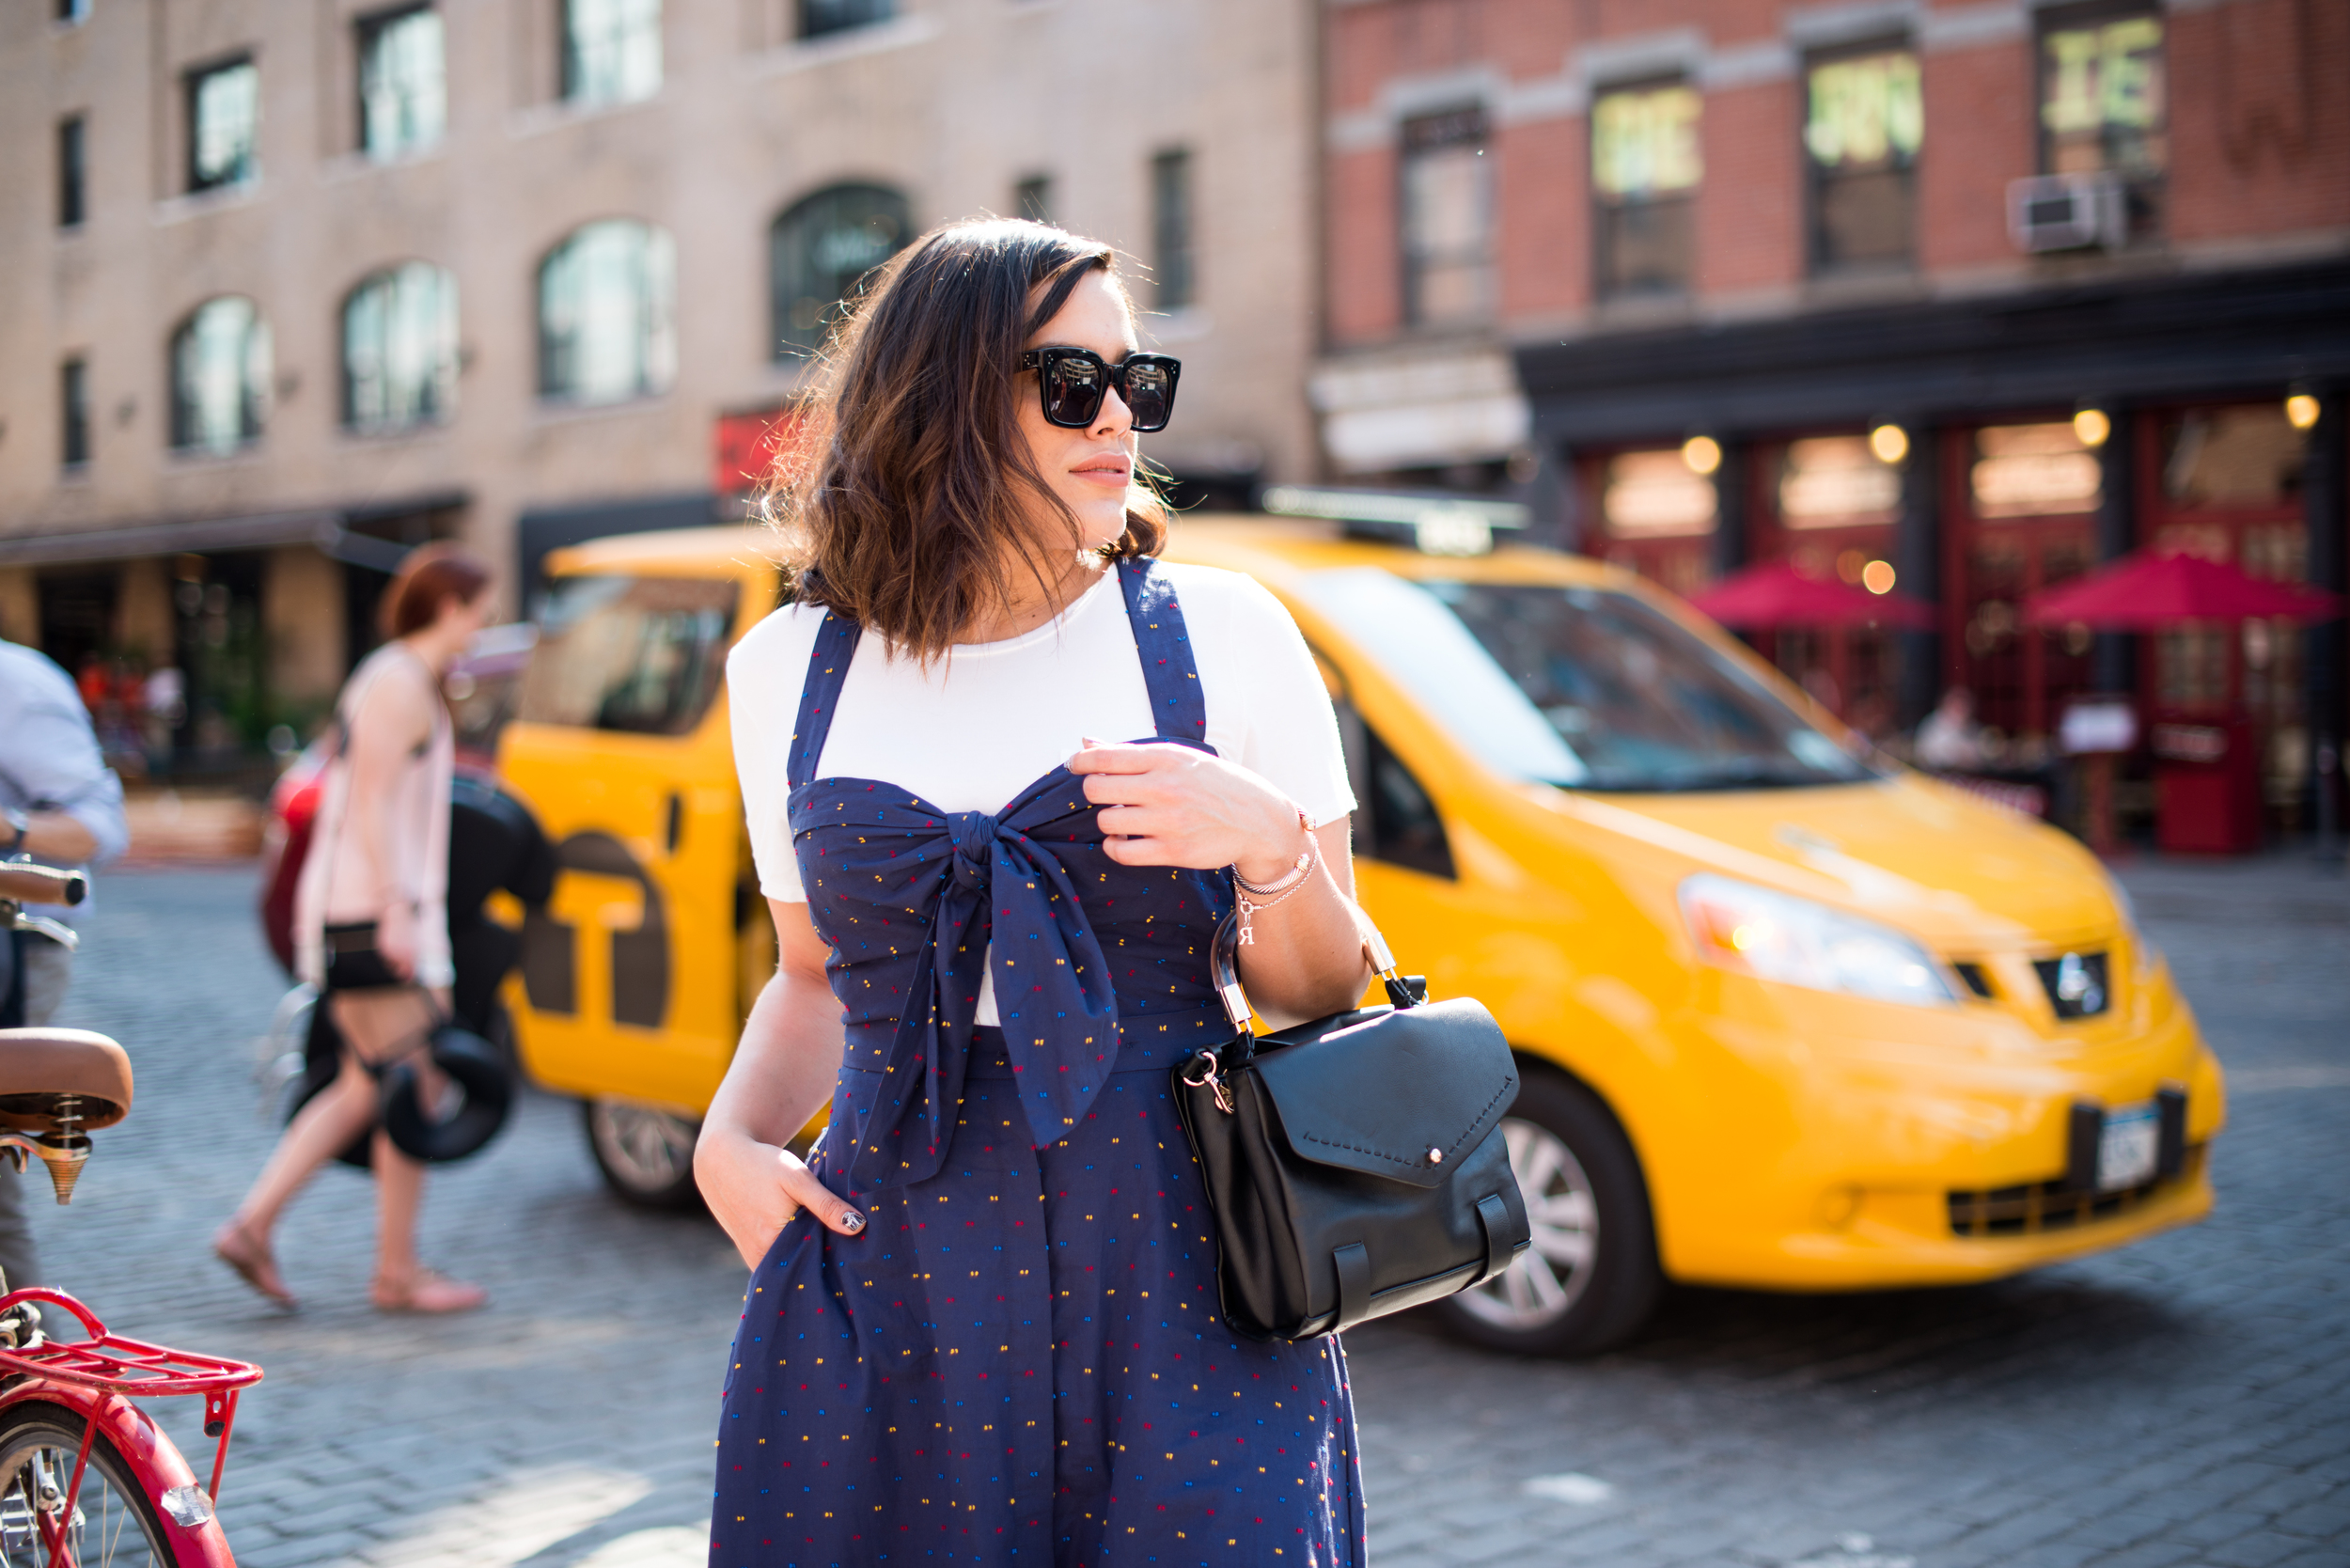 how-to-make-a-summer-dress-office-friendly-what-to-wear-when-it's-really-hot-outside-latina-new-york-city-fashion-blogger-style-operator-summer-fashion.jpg